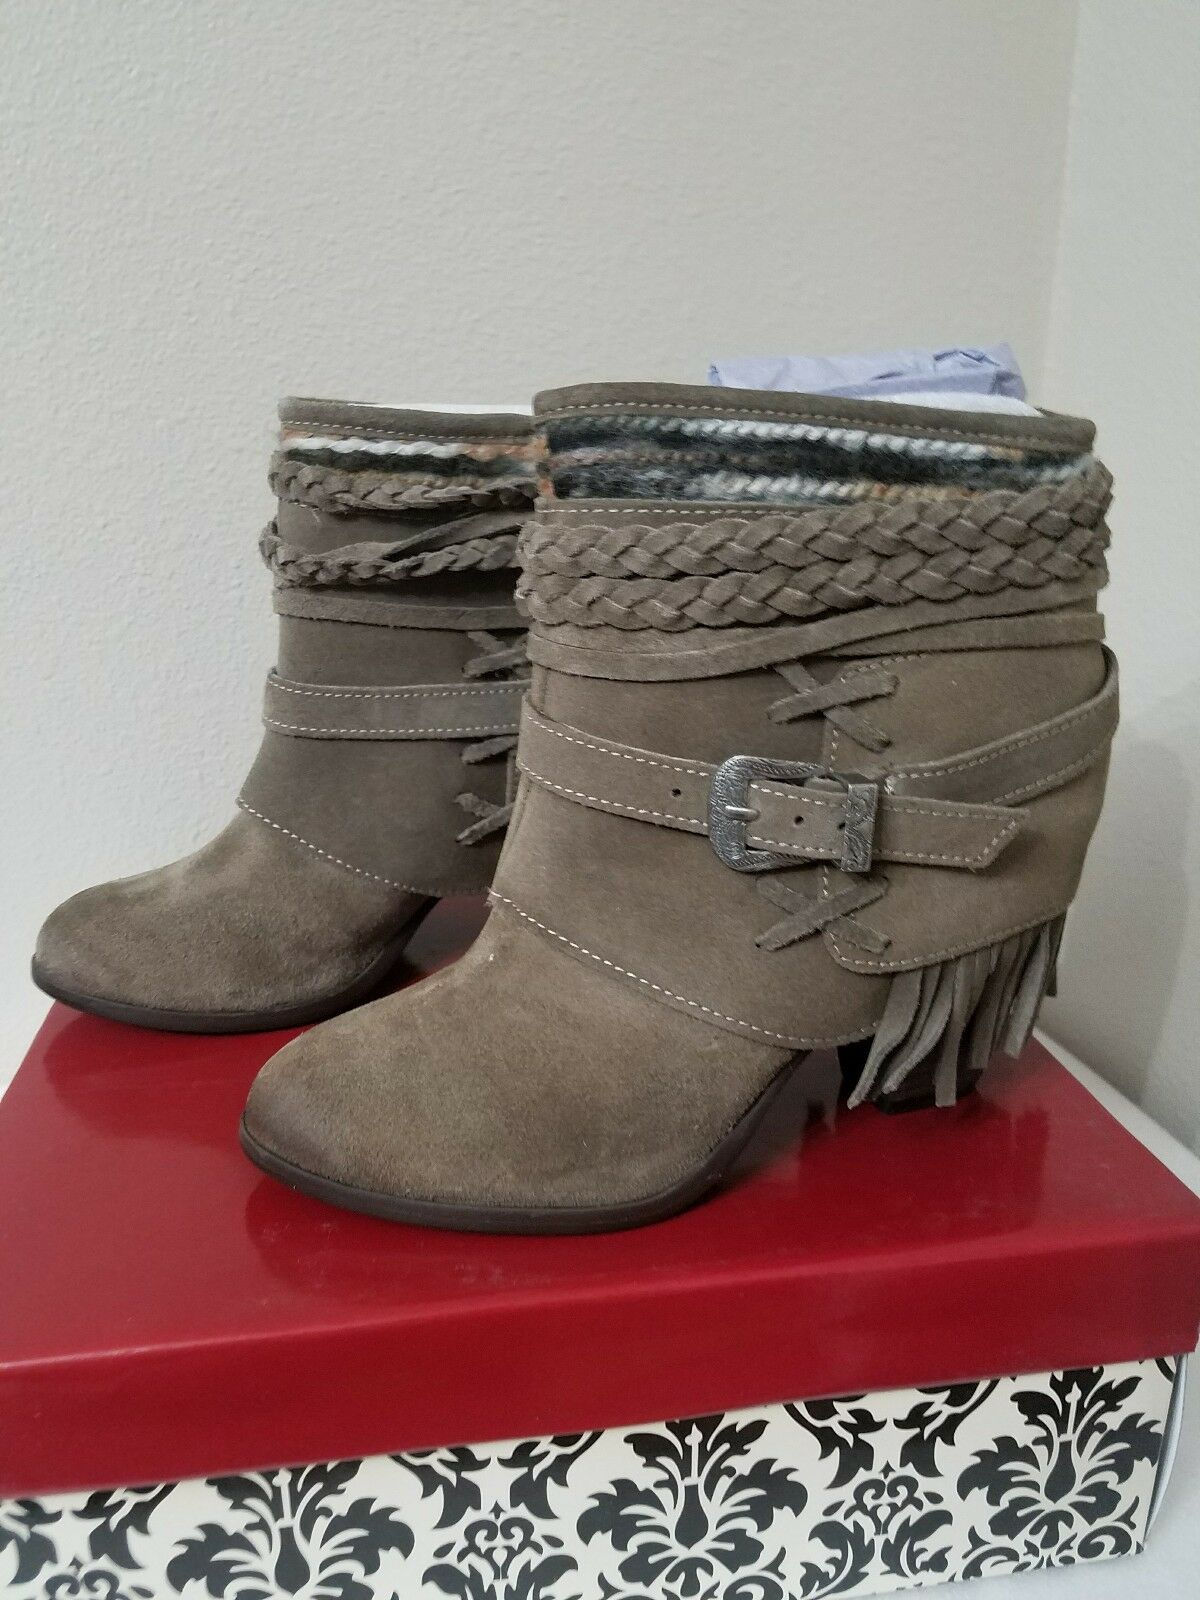 Naughty Monkey Saddle Baggin Taupe Ankle Boots 6.5